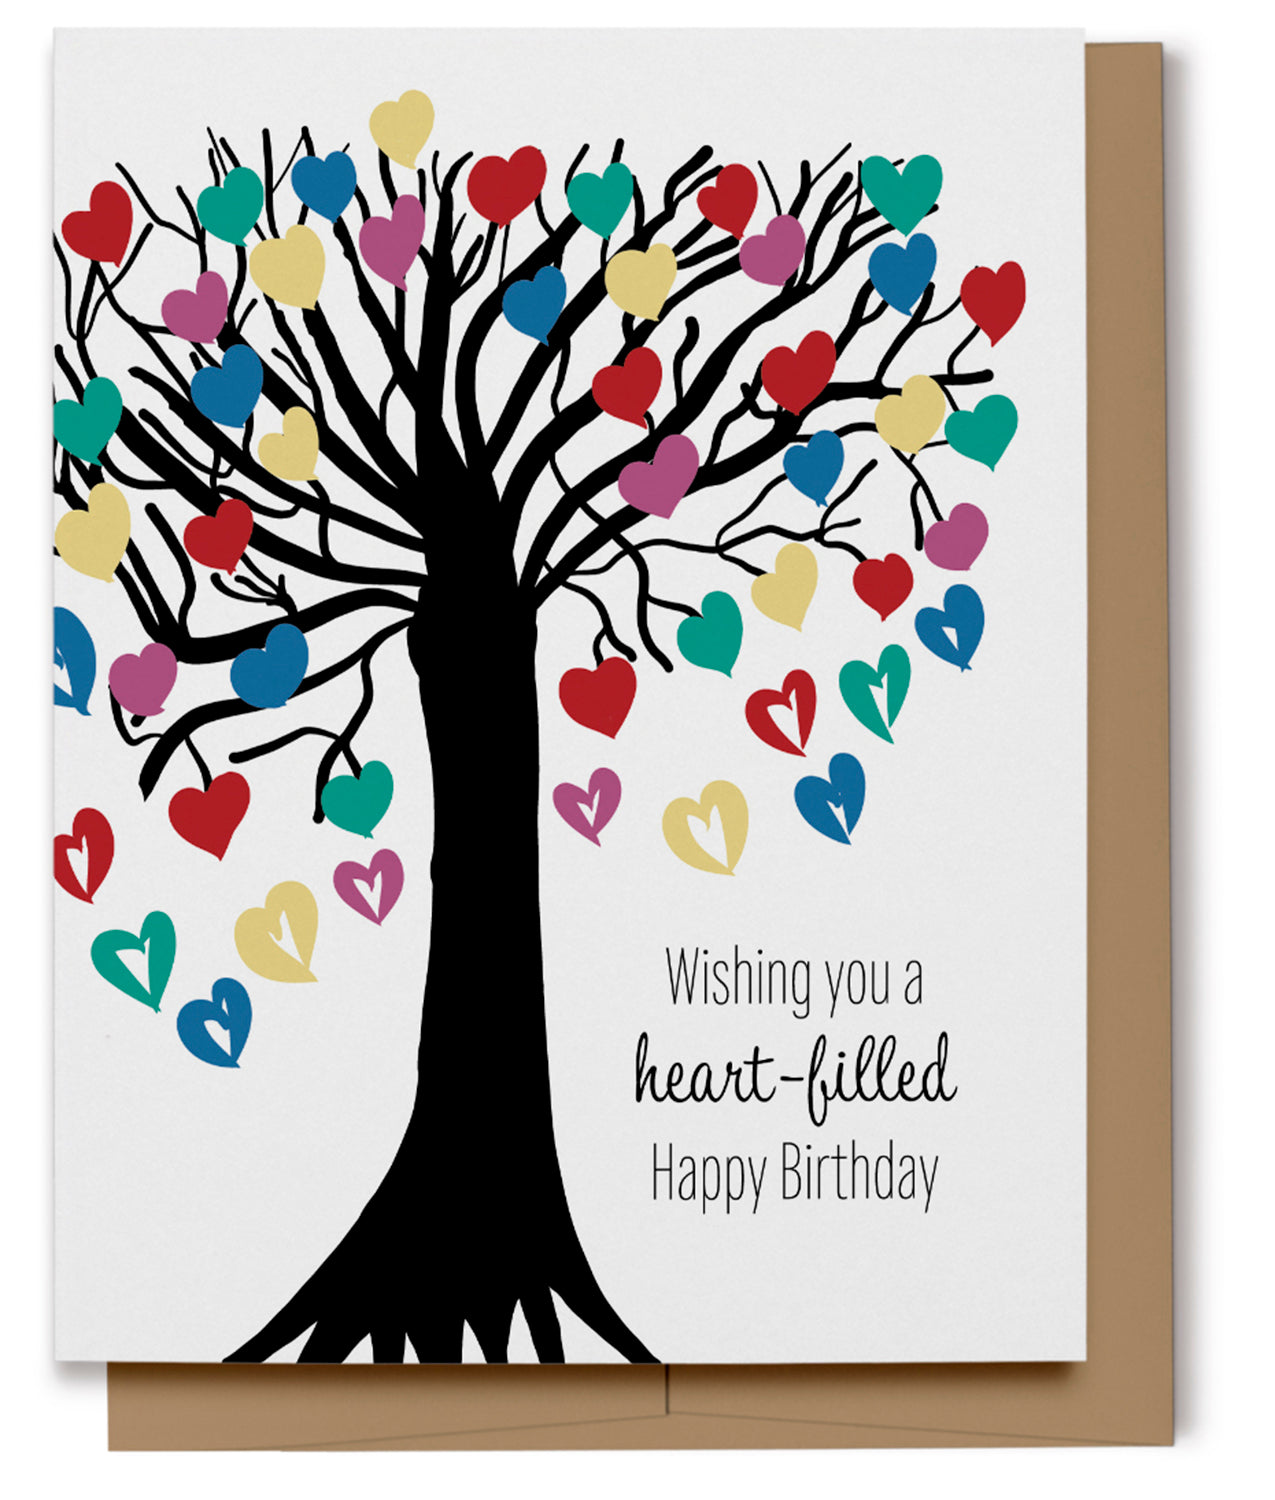 Heart-filled Happy Birthday Card (100% Recycled)